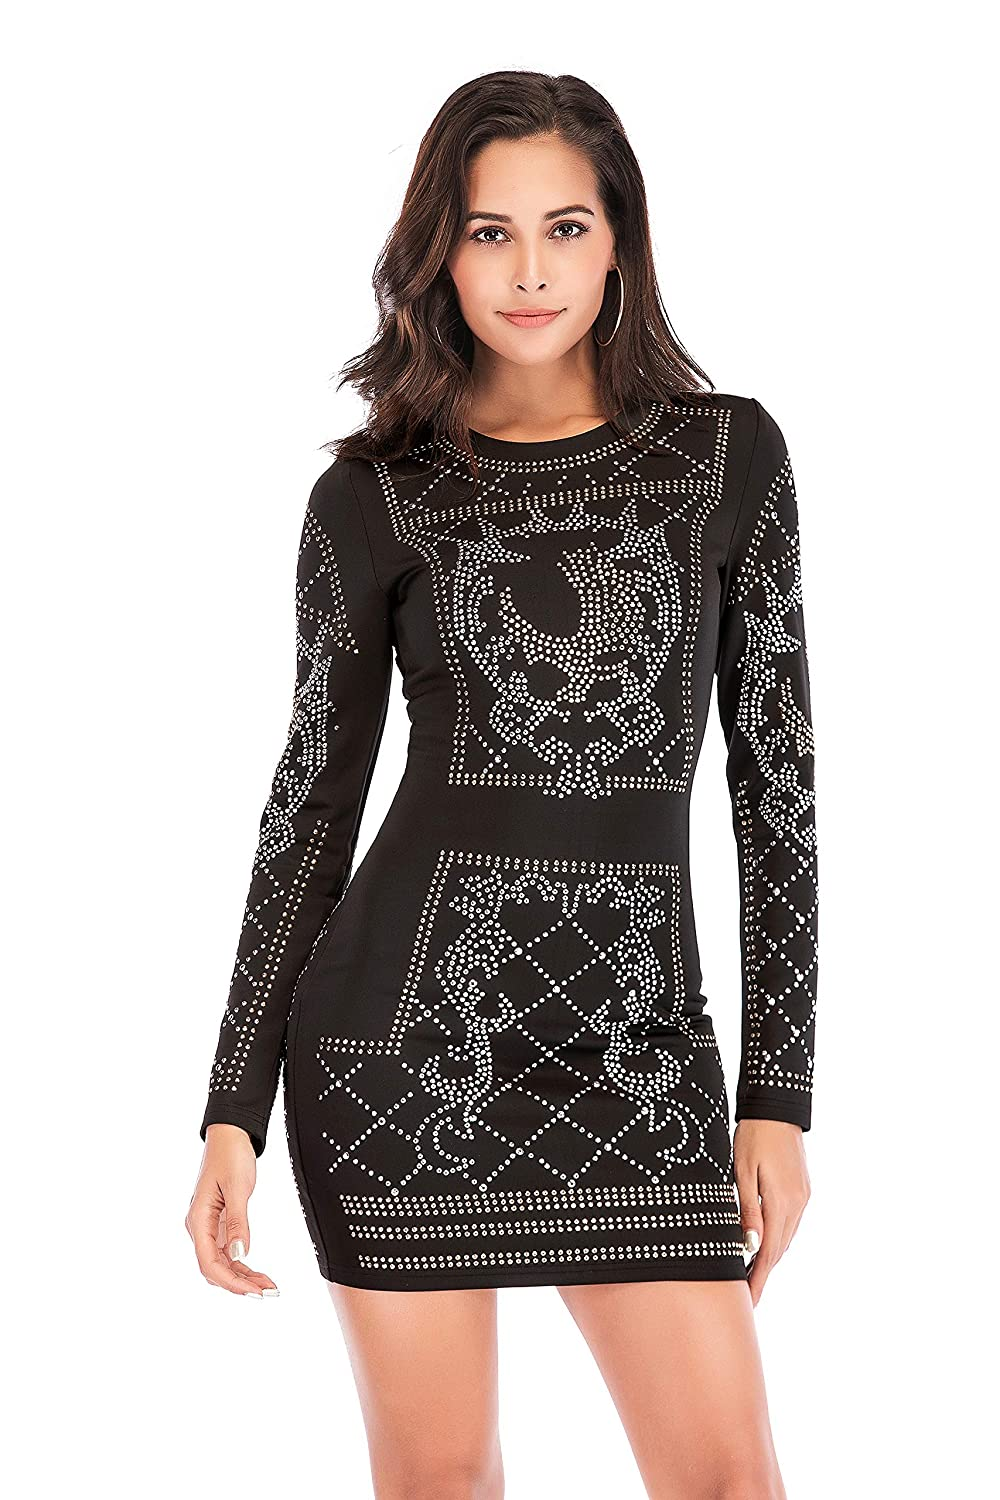 f360f5c4 Bodycon Mini Outfits Glitter Tight Club Dress Long Sleeve for Prom Party  Dress